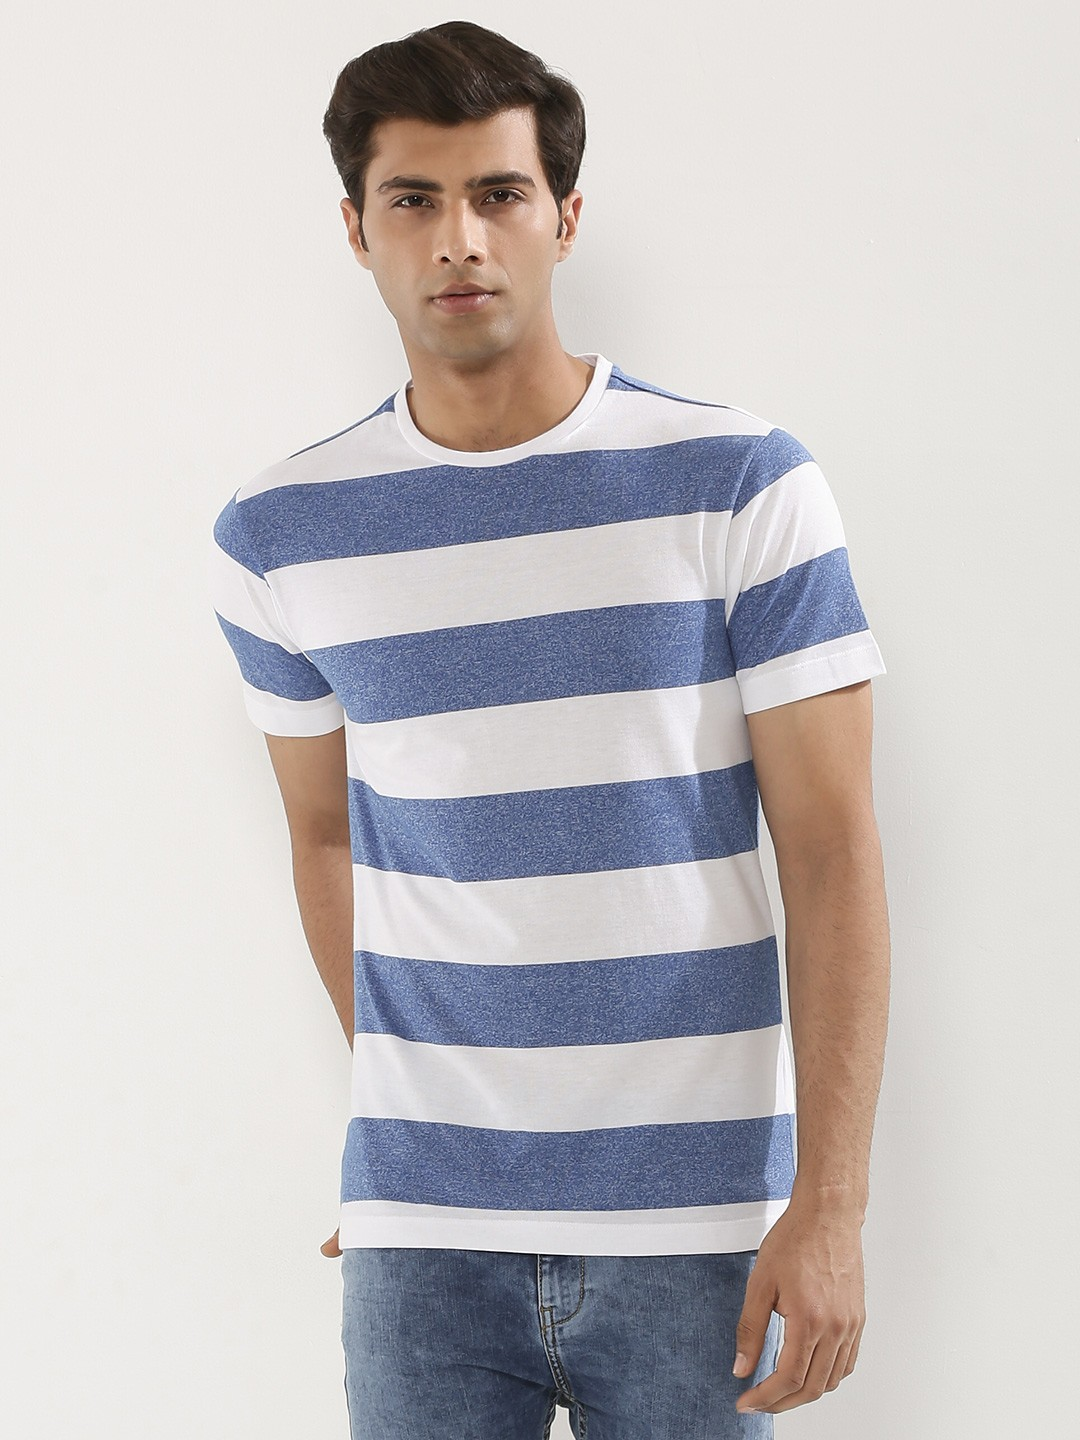 buy koovs breton stripe t shirt for men men 39 s blue multi. Black Bedroom Furniture Sets. Home Design Ideas